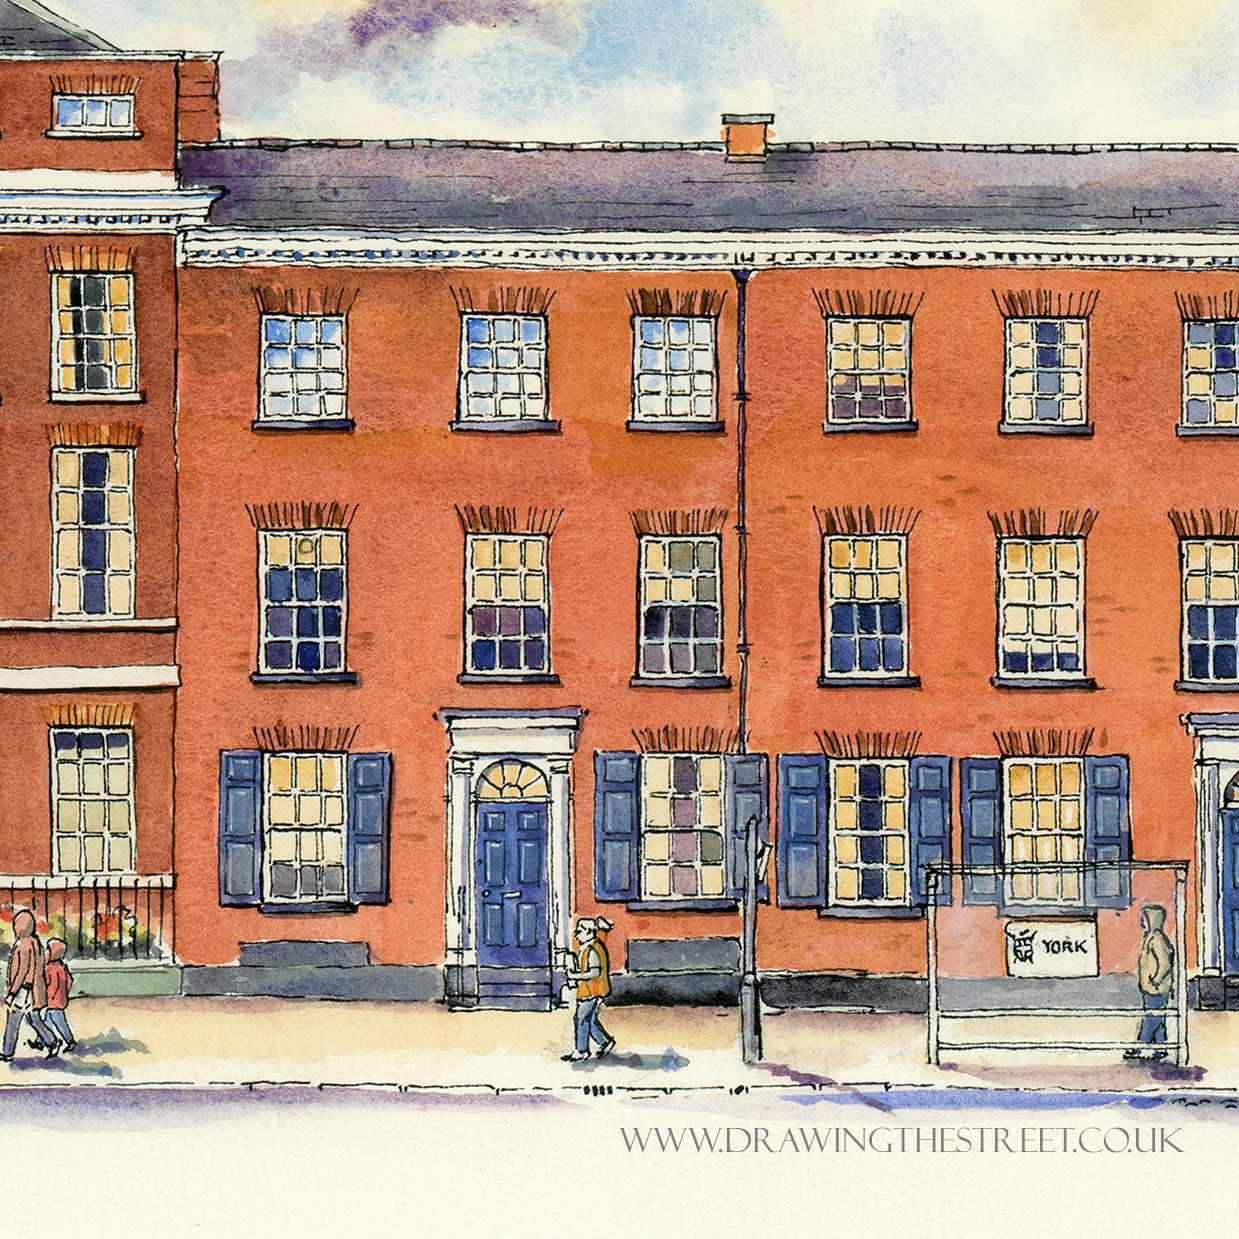 drawing of bar convent living heritage centre york by ronnie cruwys